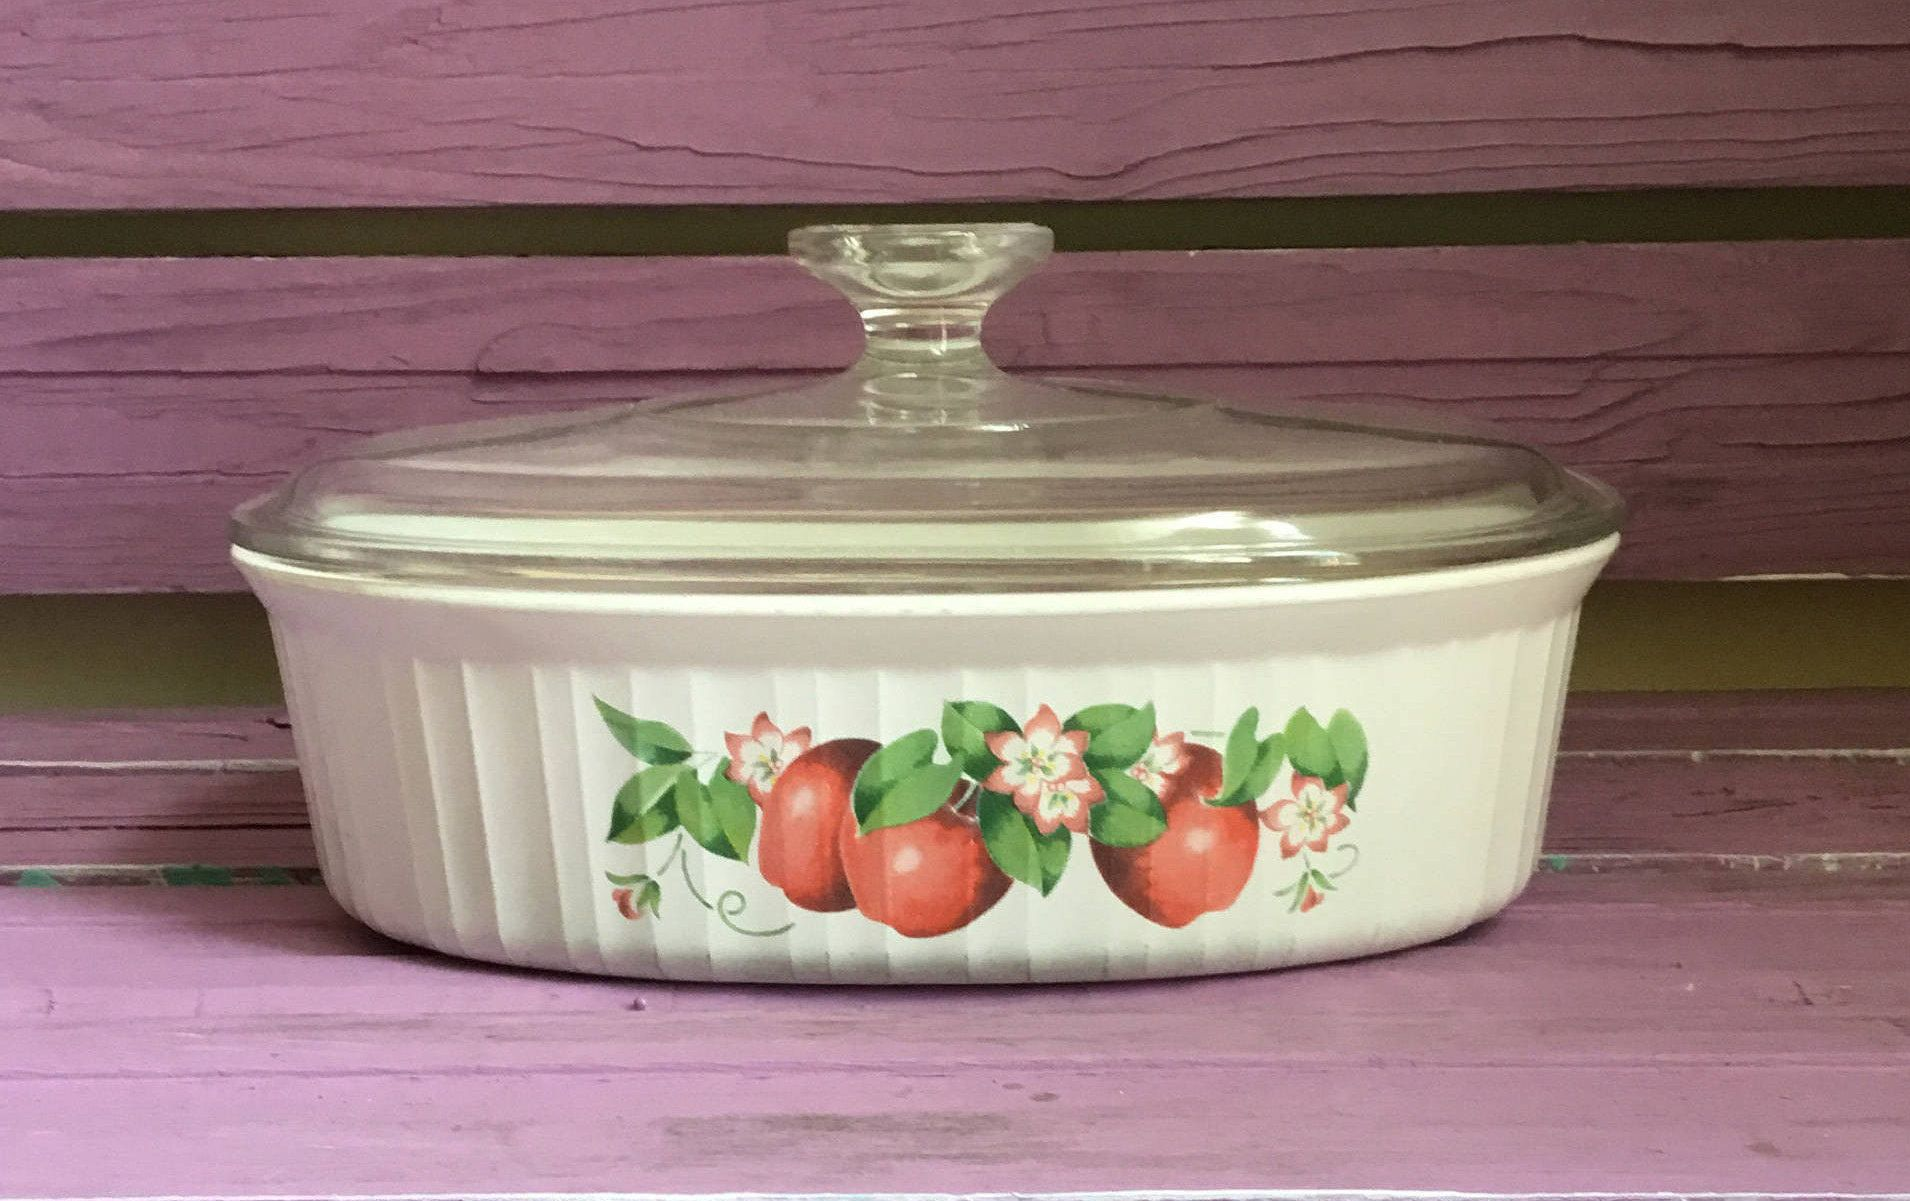 Rare French White Red Apple Vintage Corning Ware Casserole Dish 1 12